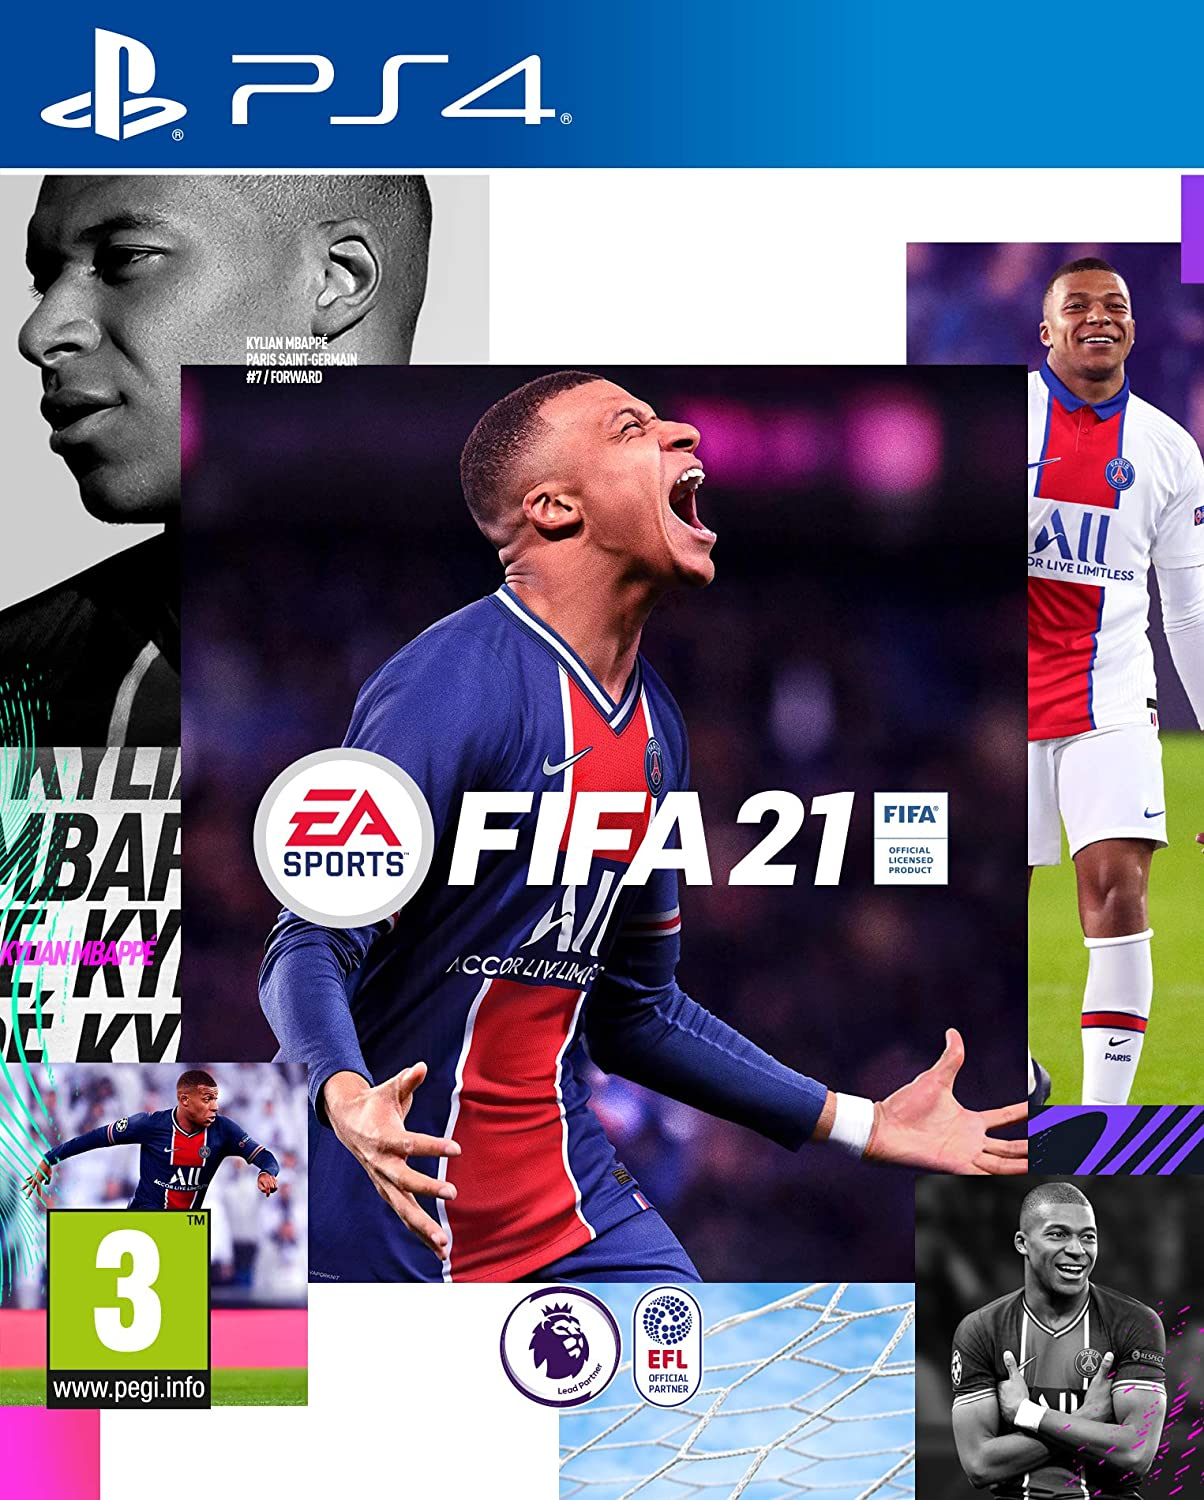 Offerta PS4 Gioco Fifa 21 su TrovaUsati.it